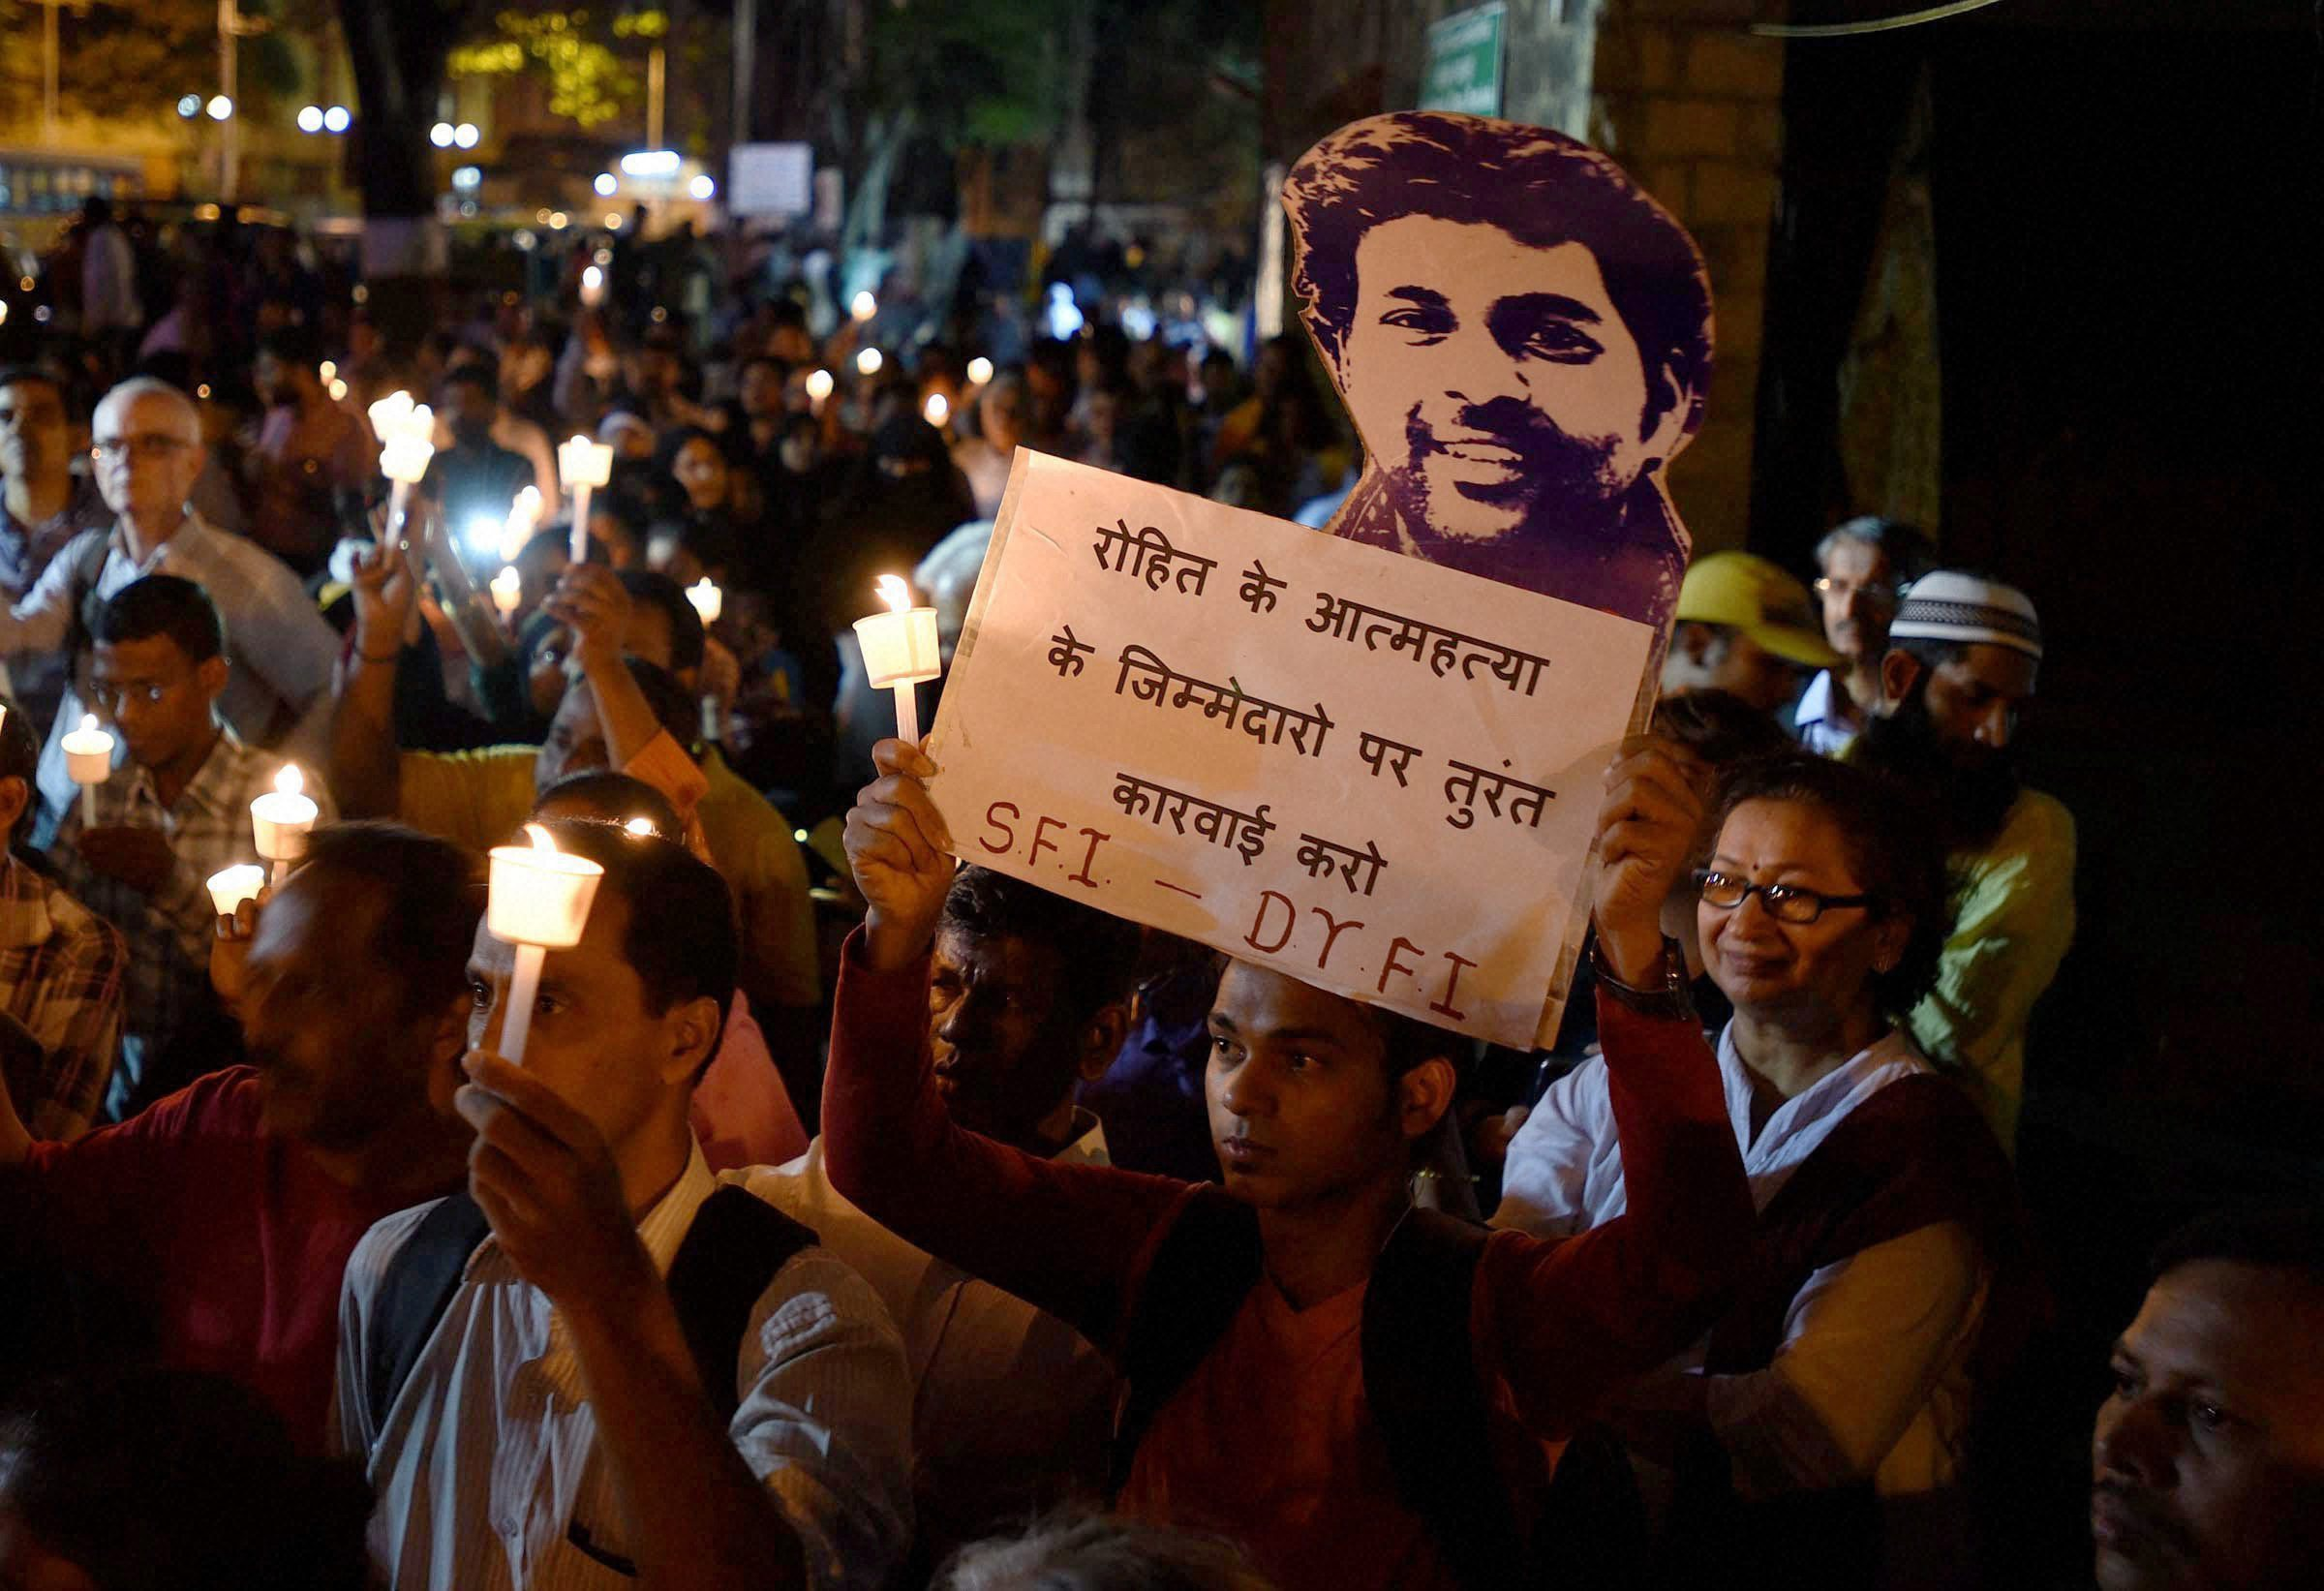 When Rohit Vemula committed suicide, the BJP set out to prove he wasn't a Dalit as if that would have normalised his death. Photo credit: PTI